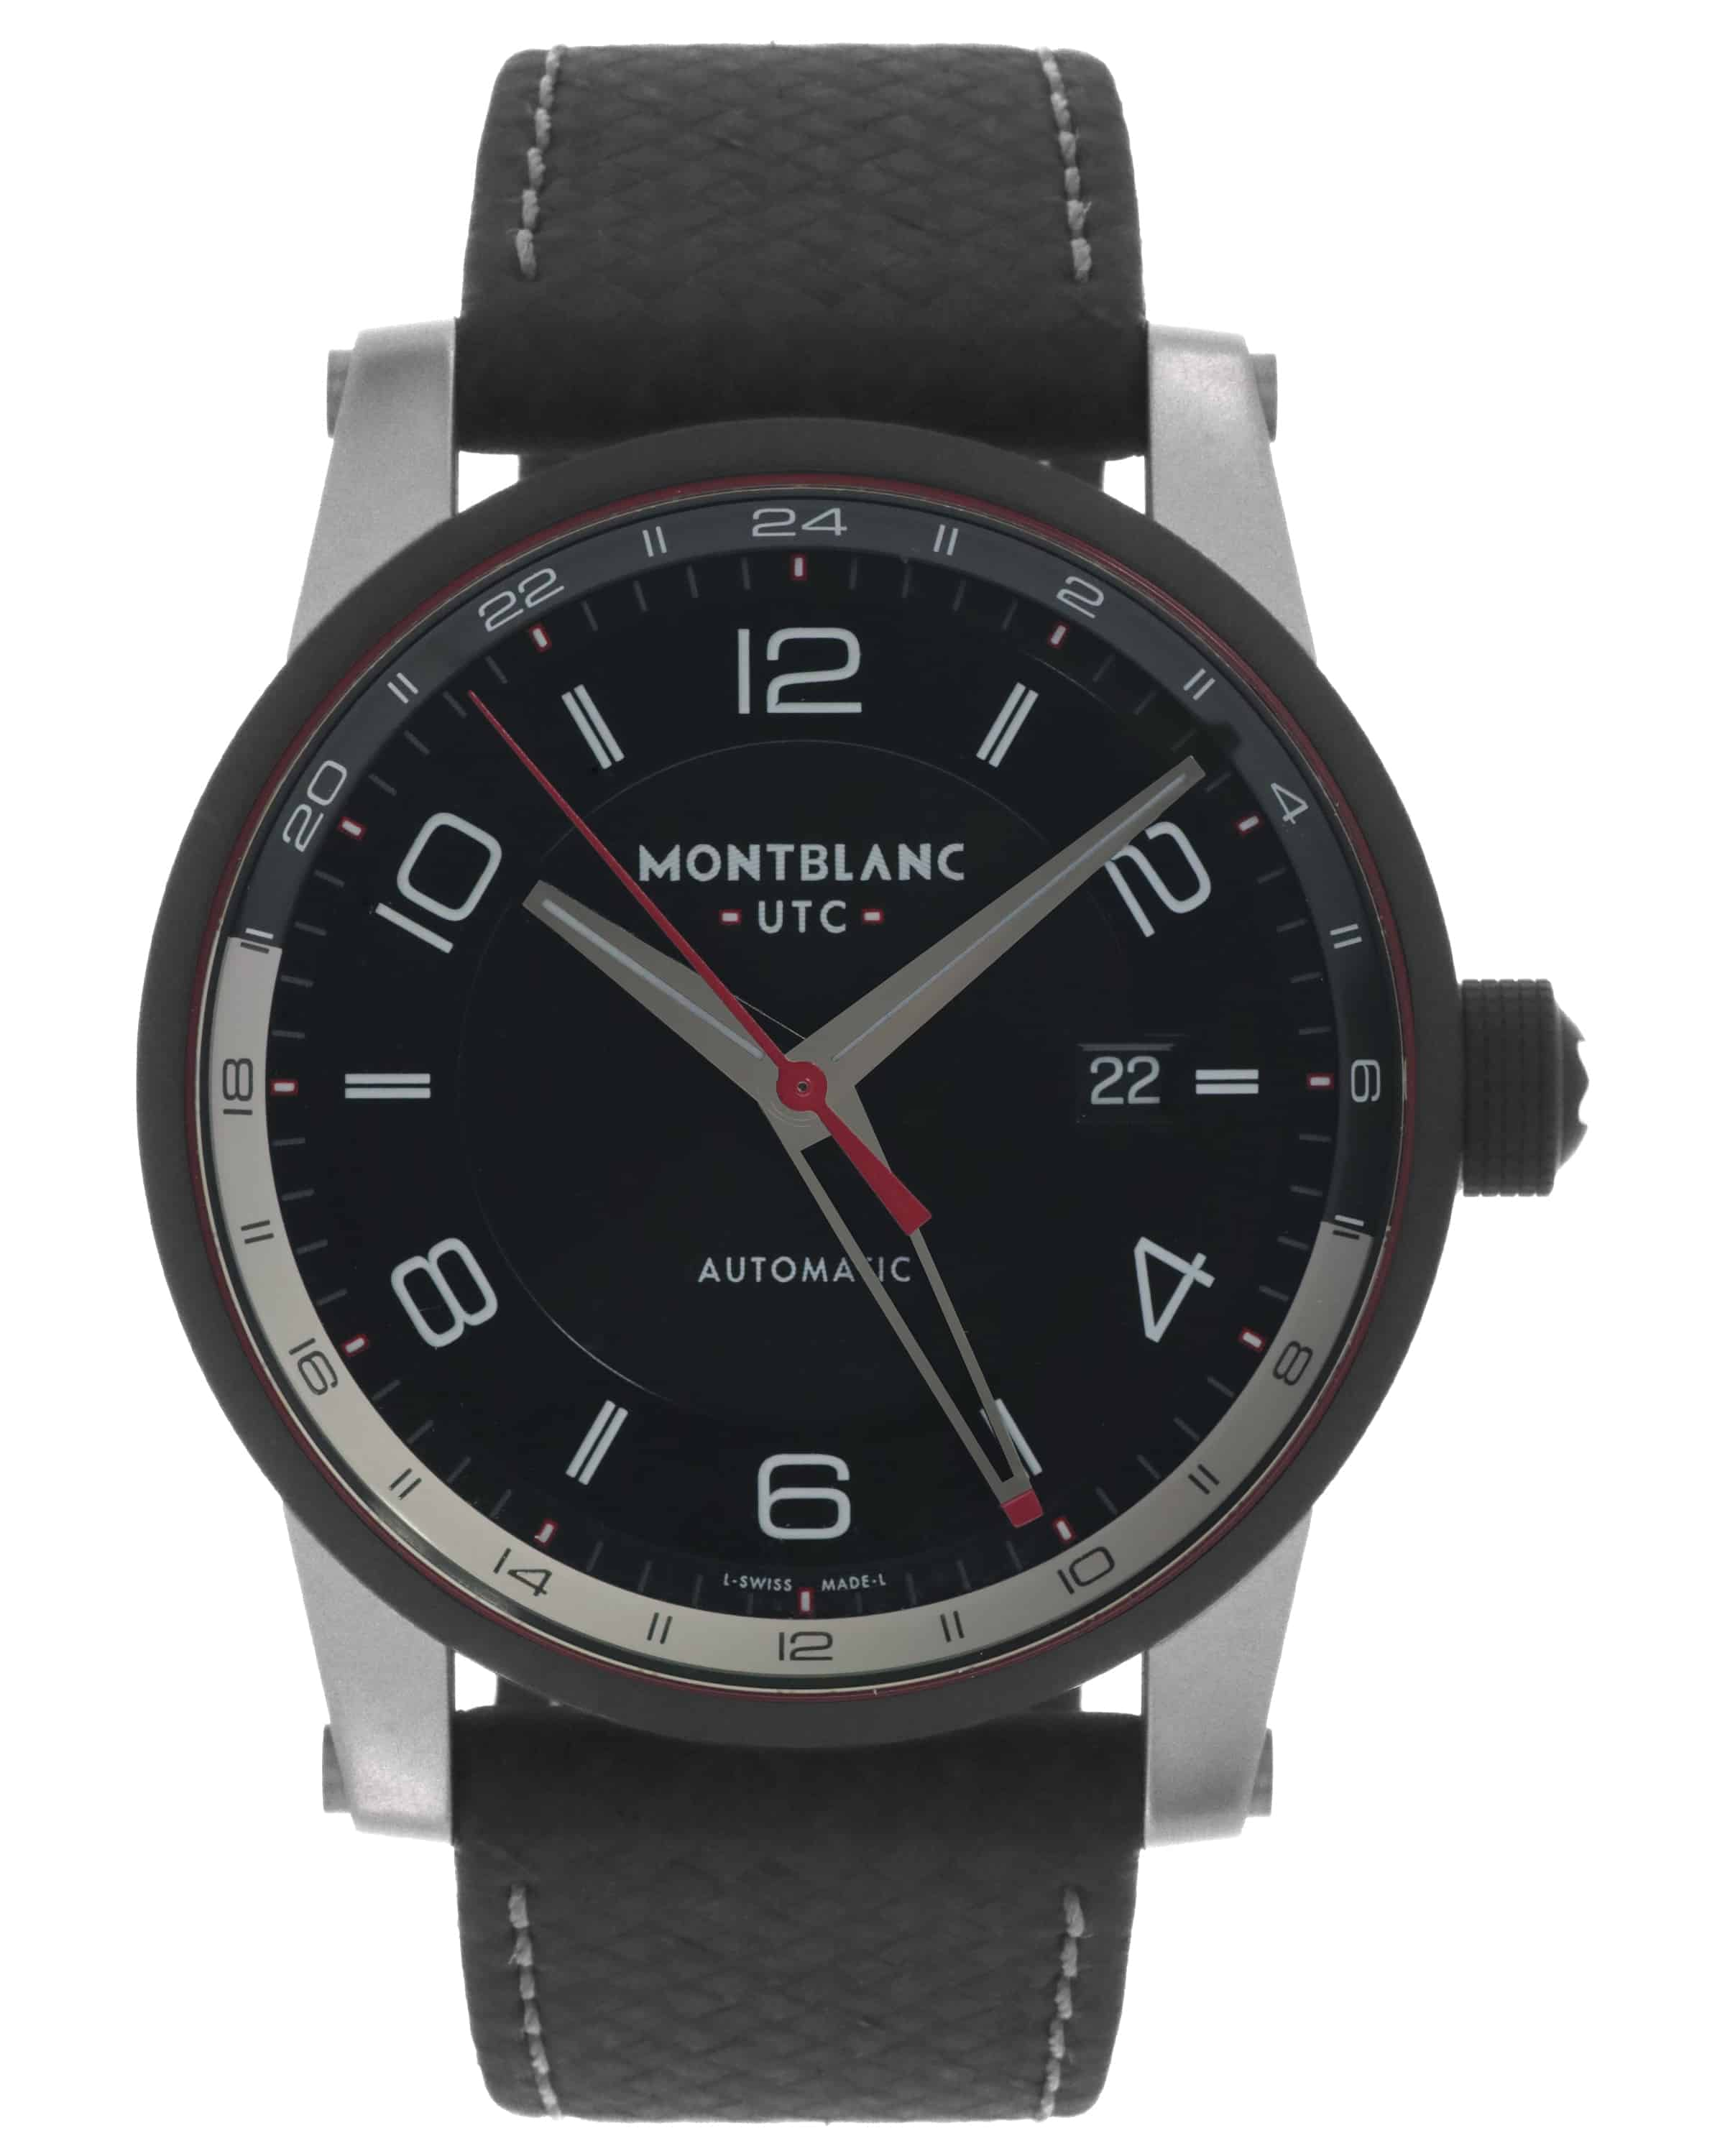 Montblanc Timewalker GMT Automatic Watch $1095 + free s/h